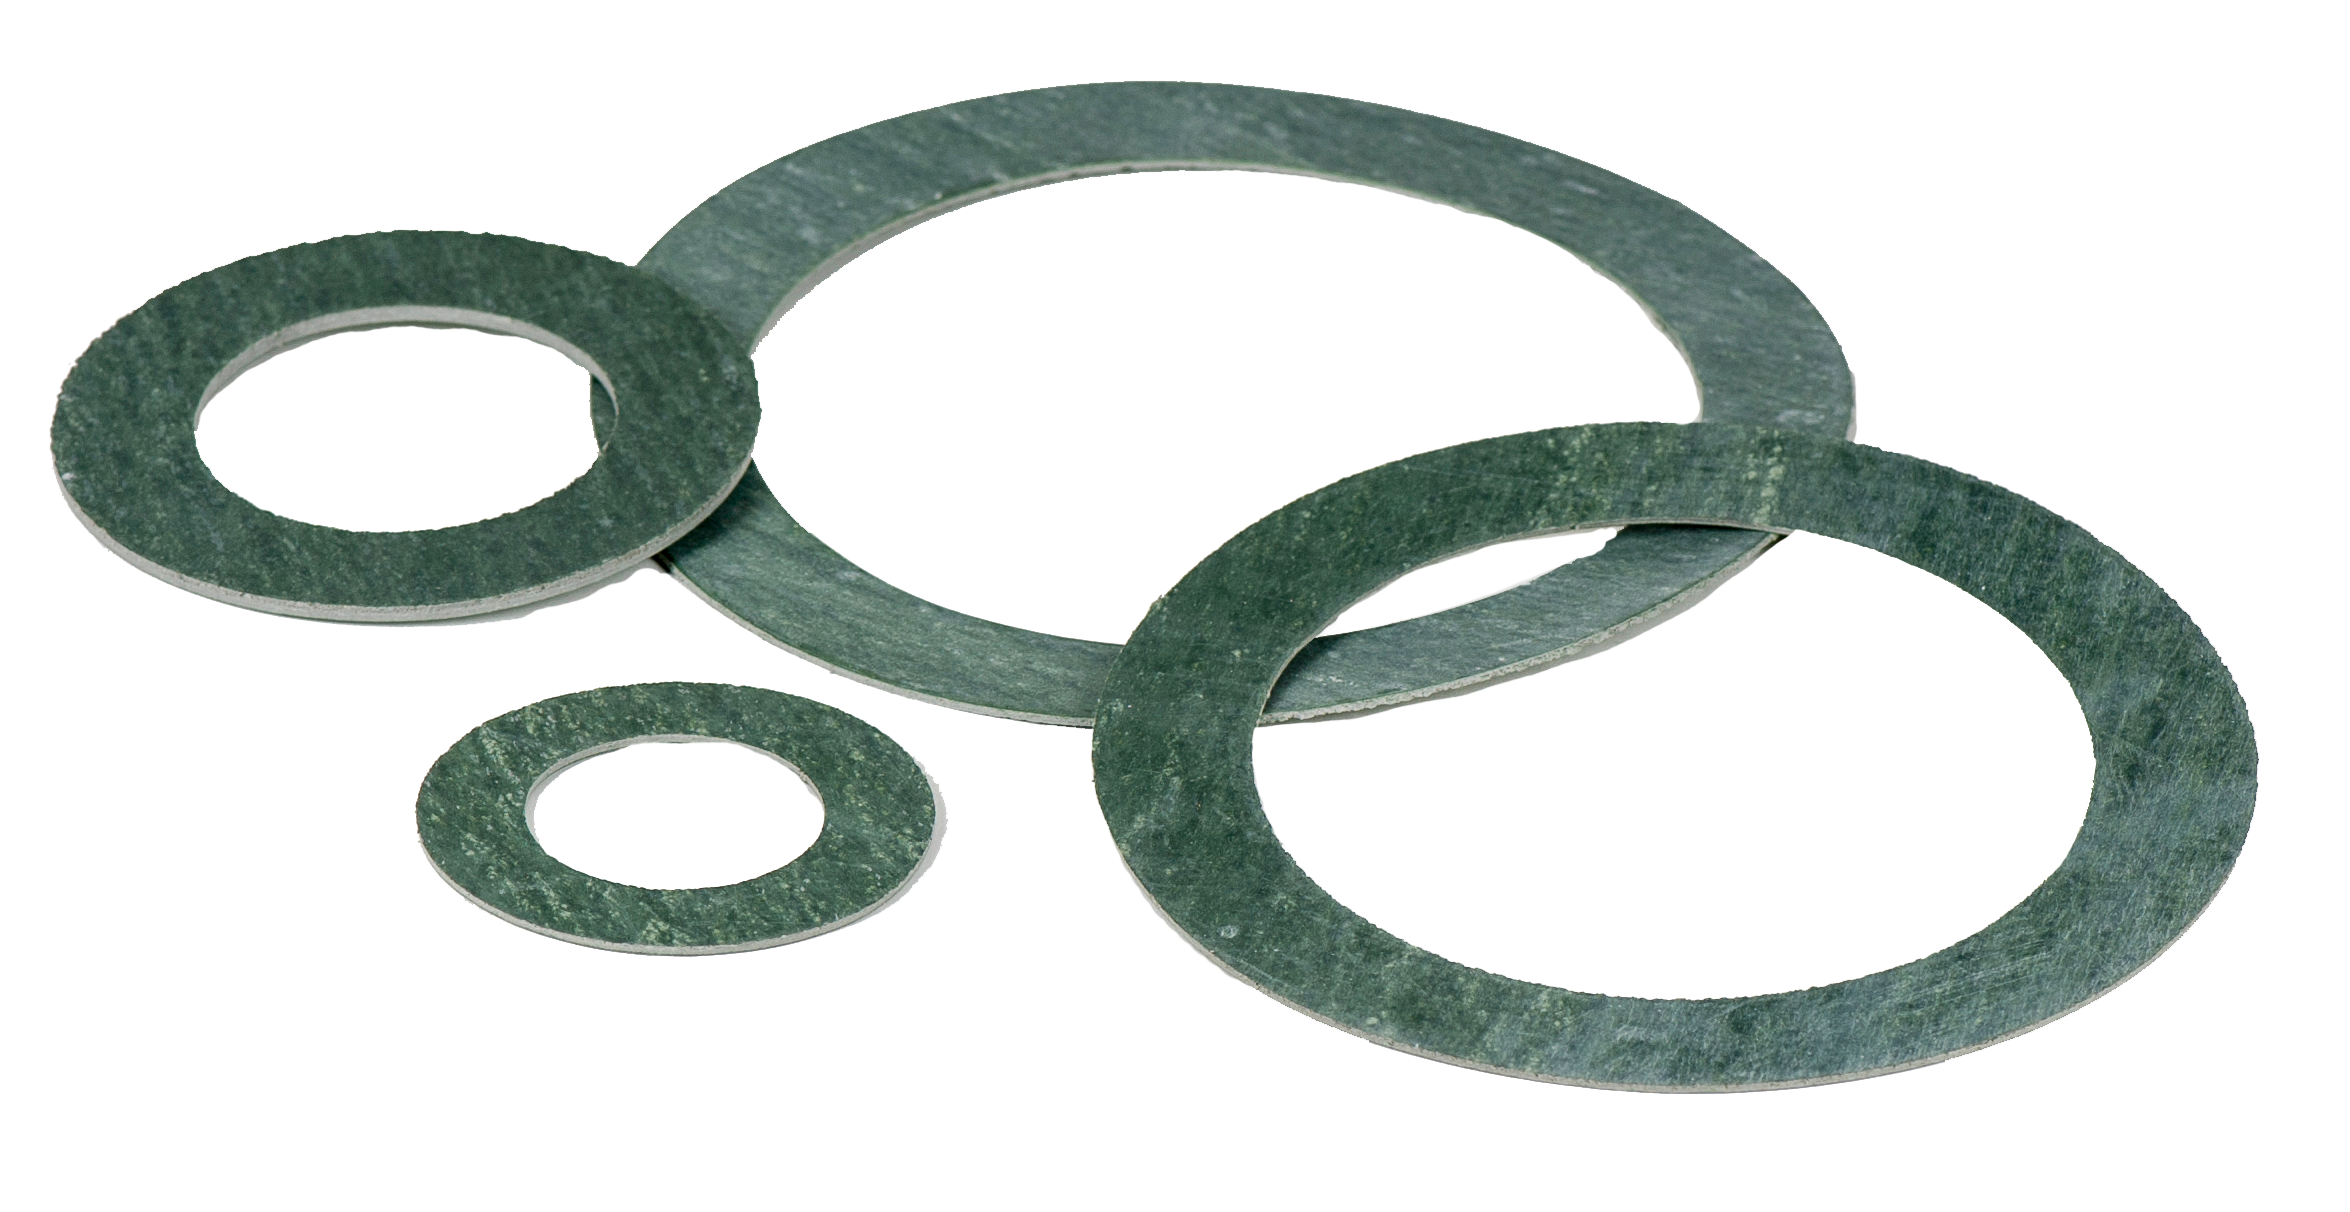 Ring Gaskets for 150 lb ASME/ANSI Pipe Flanges | Phelps